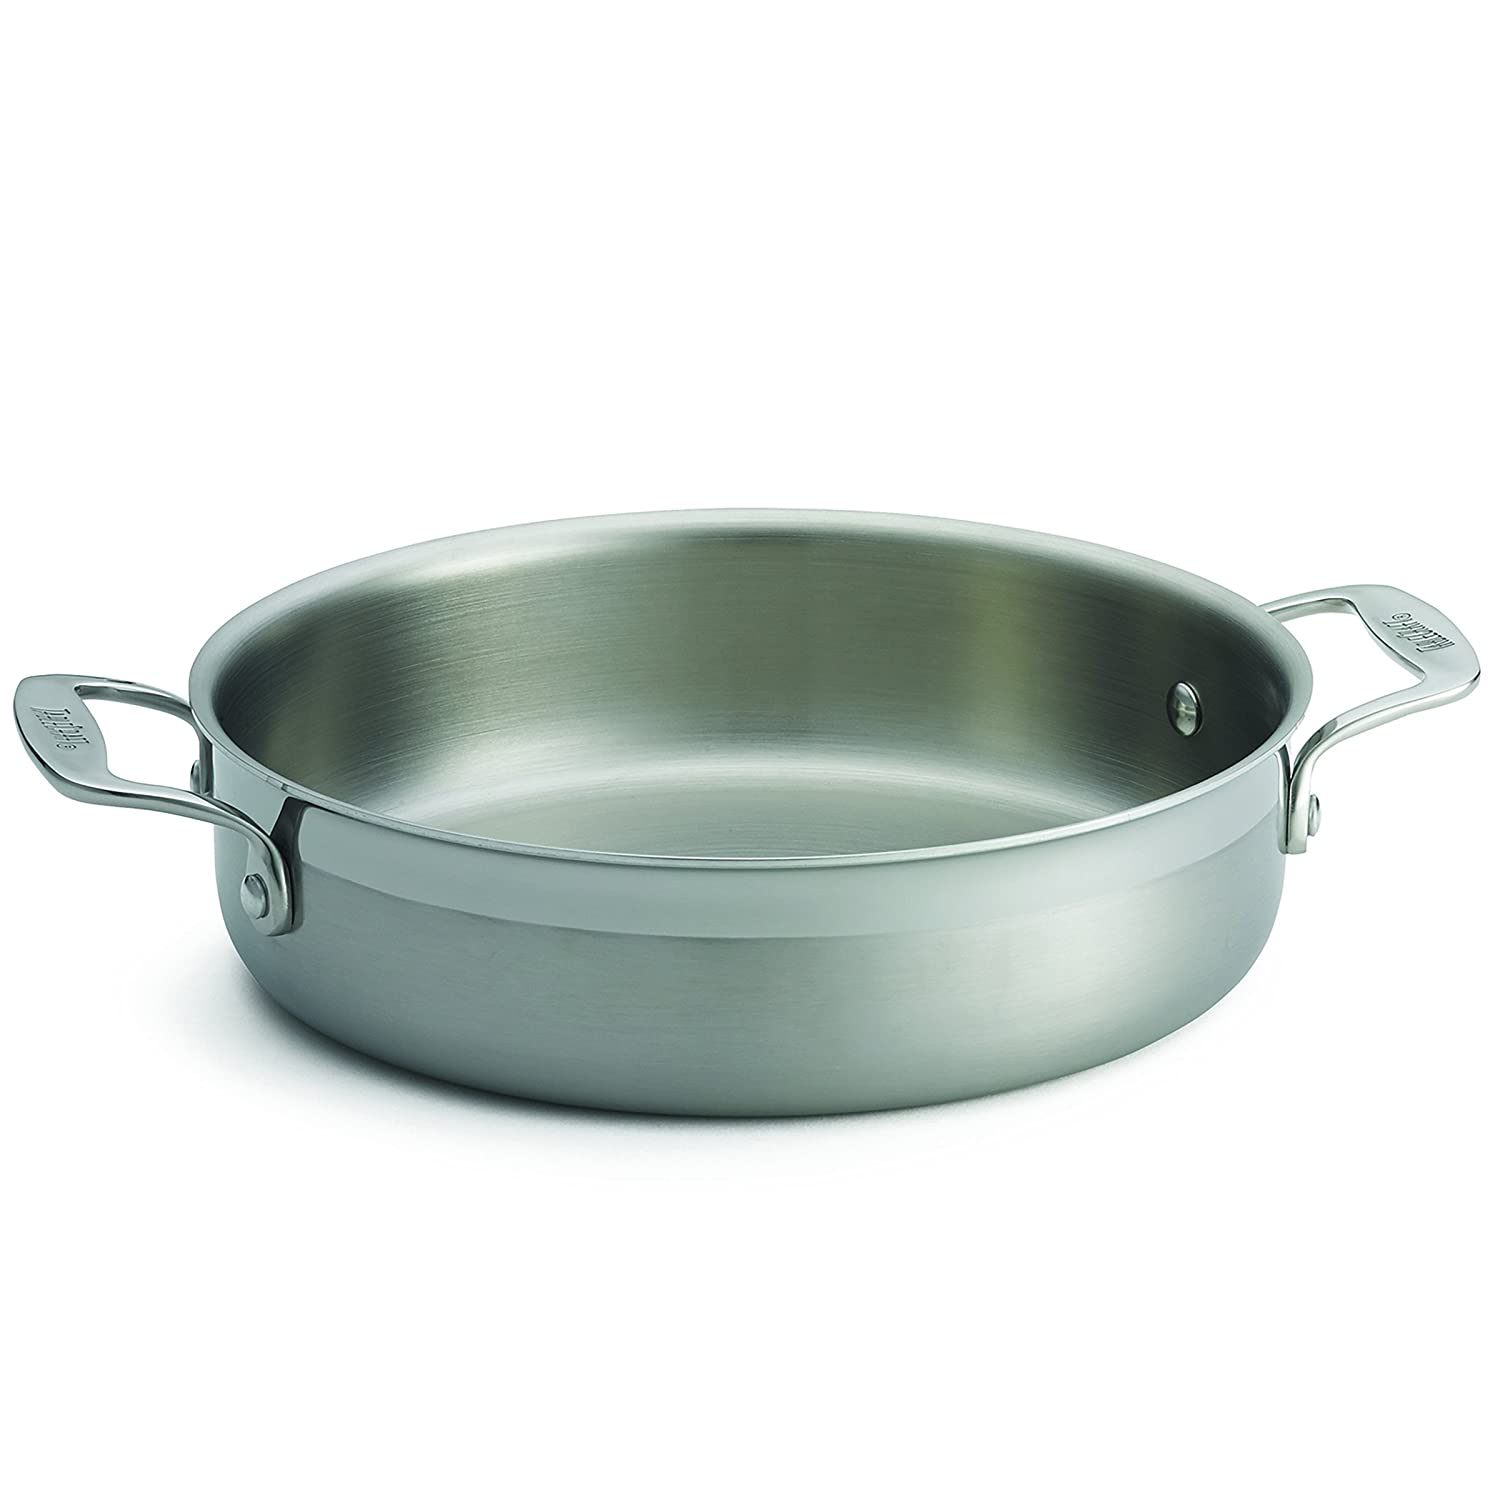 TableCraft Products CW7010 Tri-Ply Brazier with 2 Handles, 10